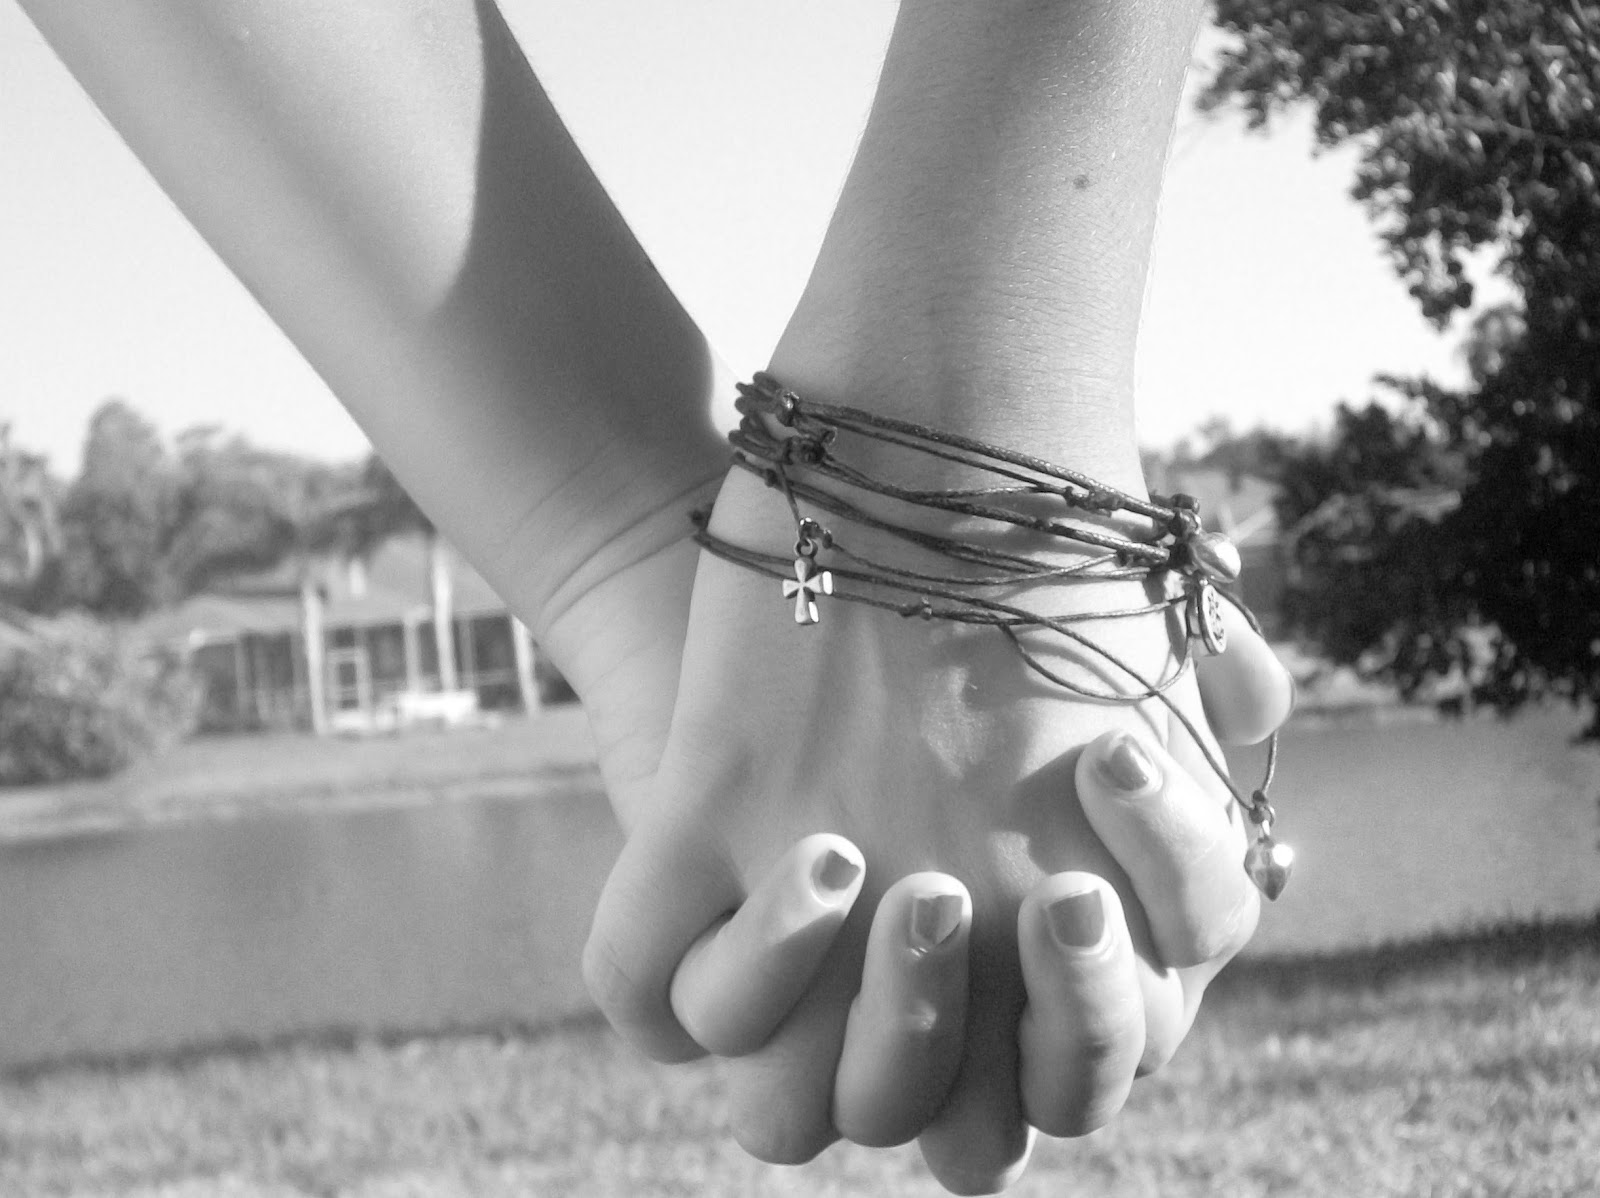 Best Friends Holding Hands In Black And White | www.imgkid ...